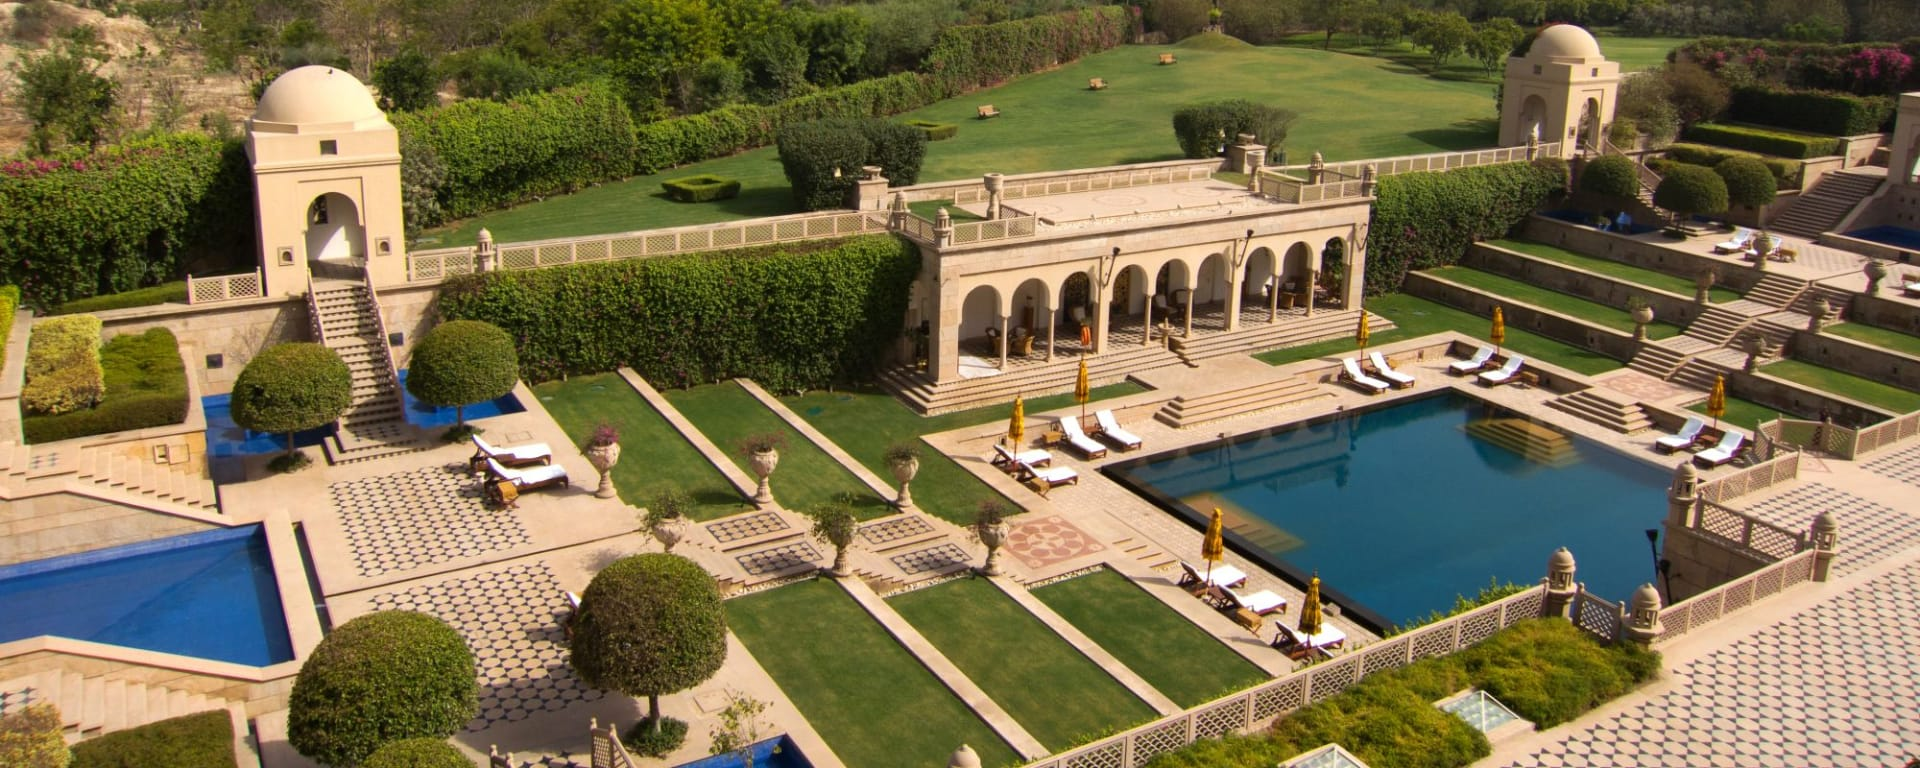 The Oberoi Amarvilas à Agra: Overview